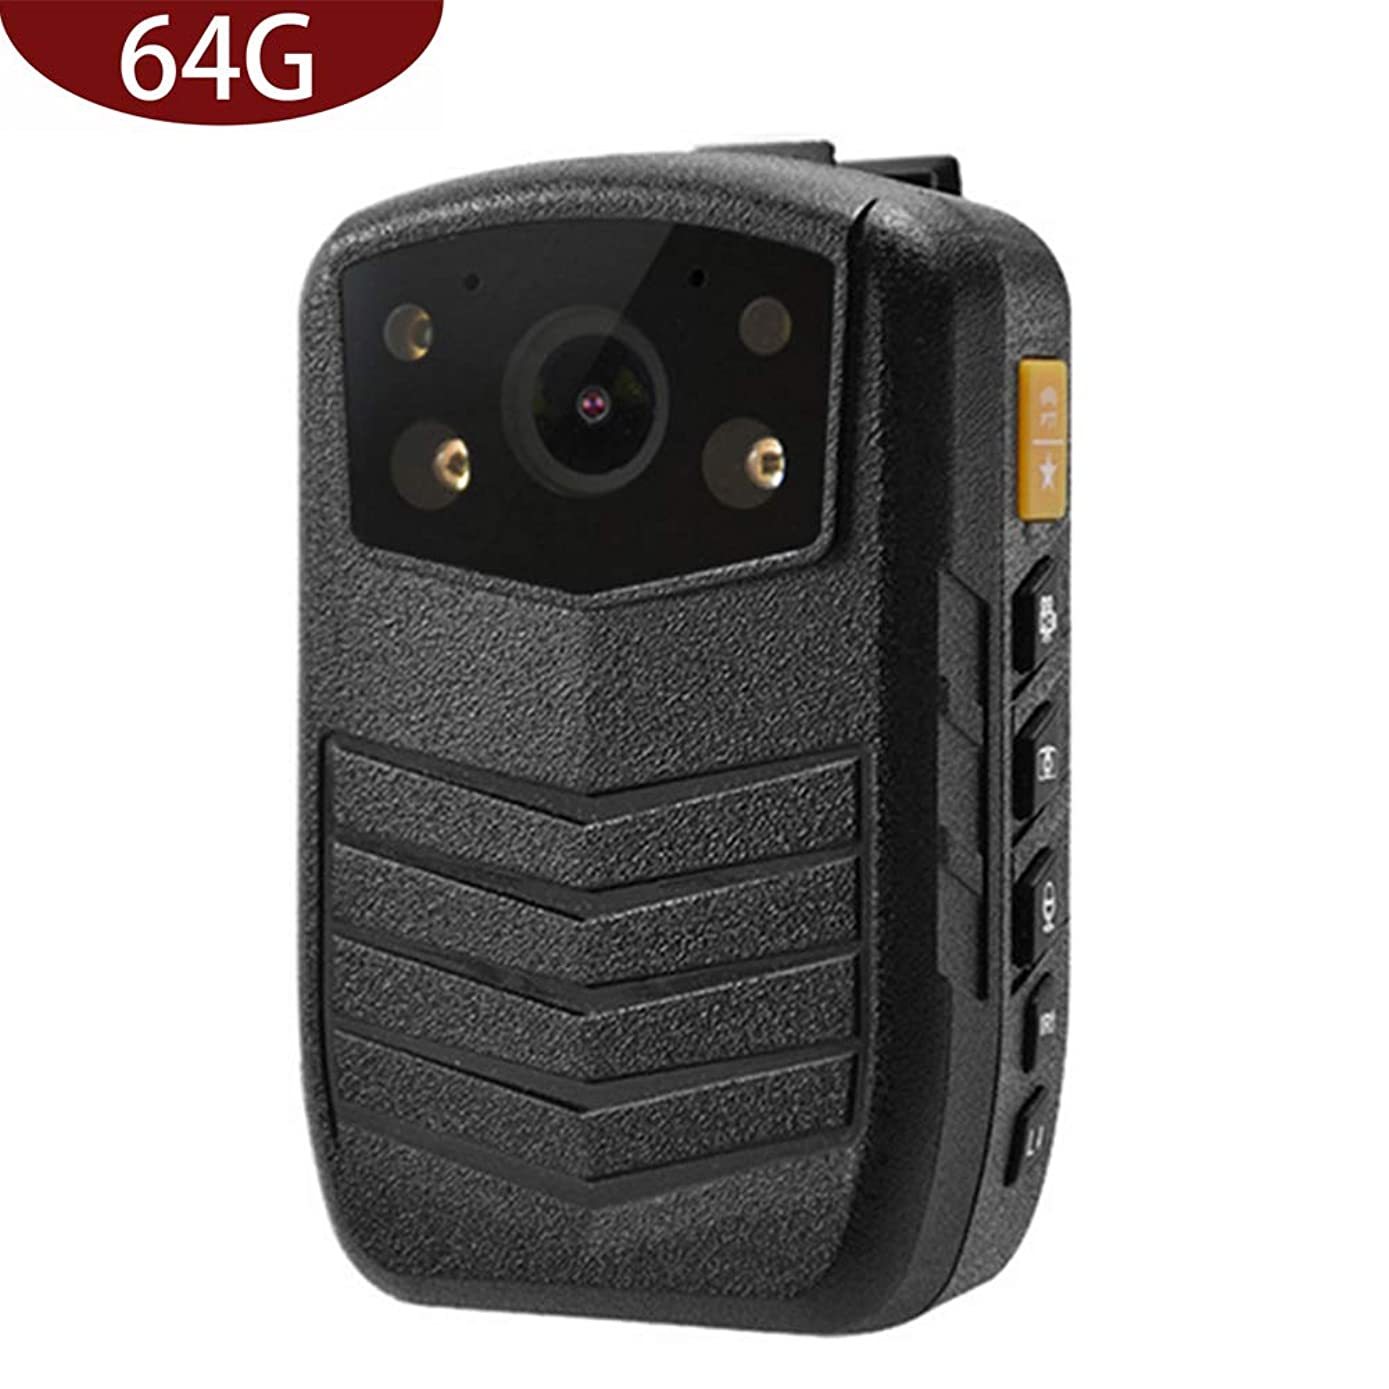 Meknic Q3 2K High Definition Portable Security Guards 64G Body Camera, Police Body Worn Mounted Camera Good Night Vision with 2